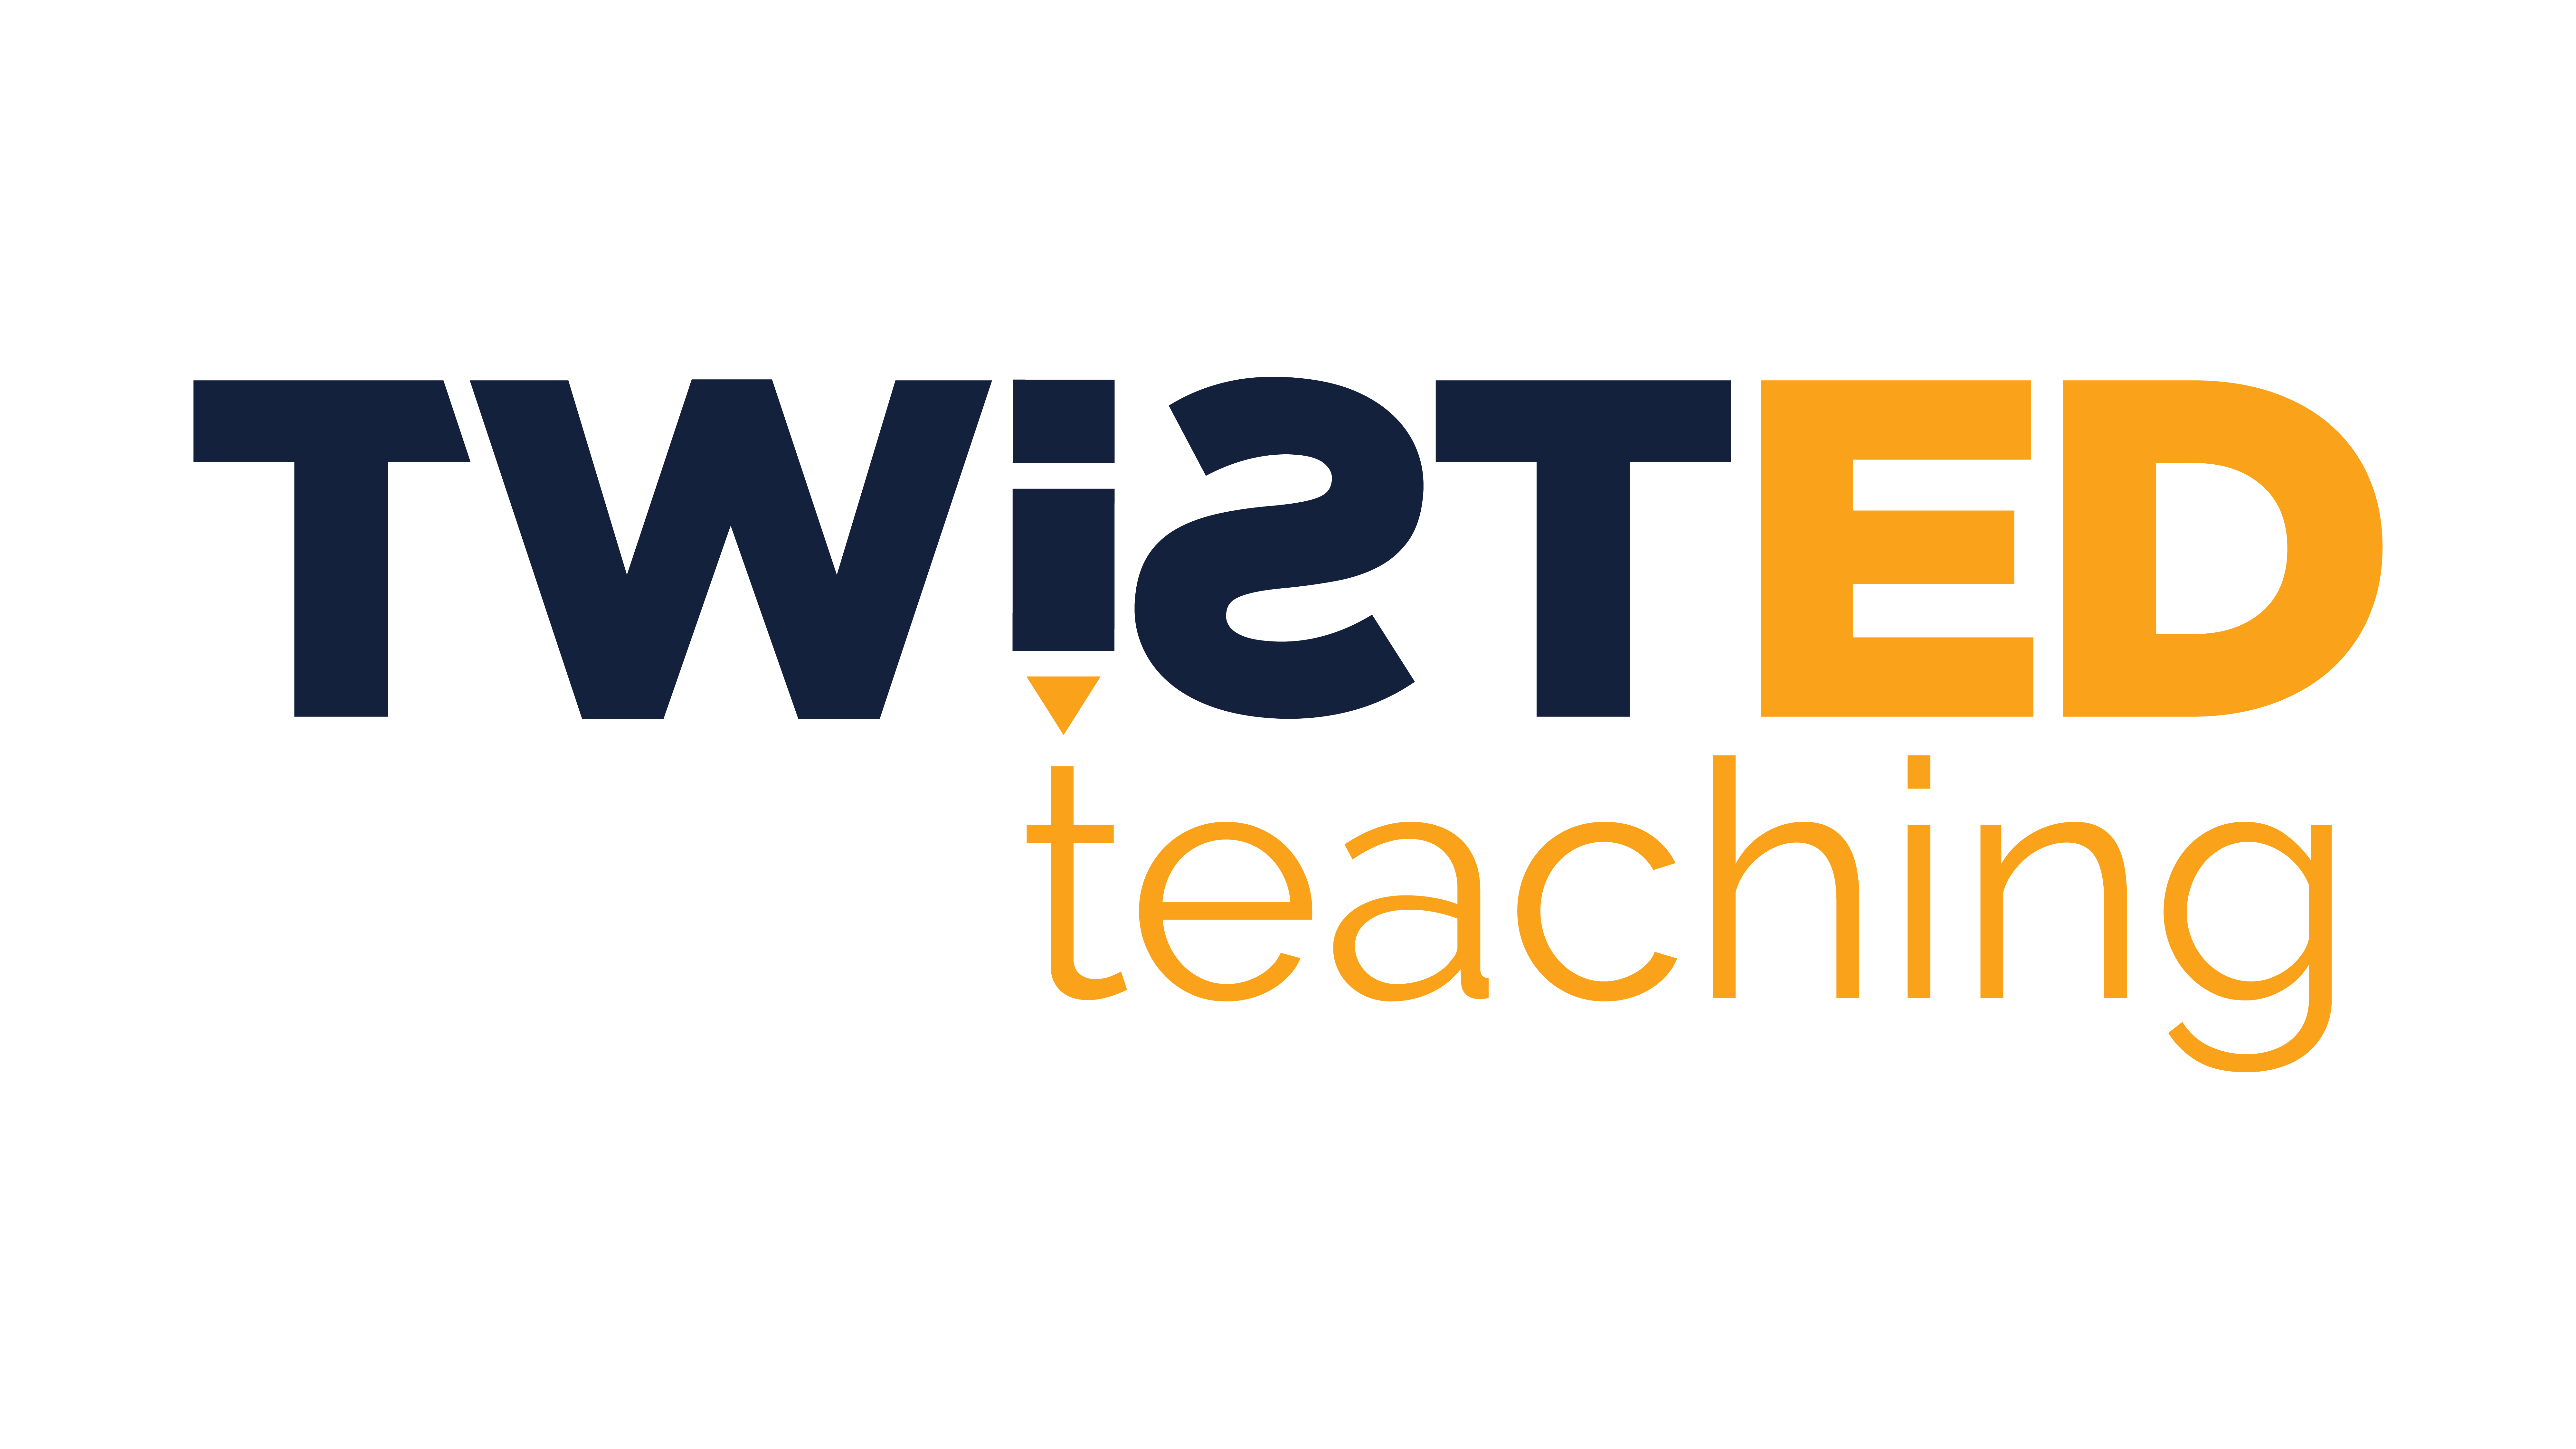 TwistED Teaching